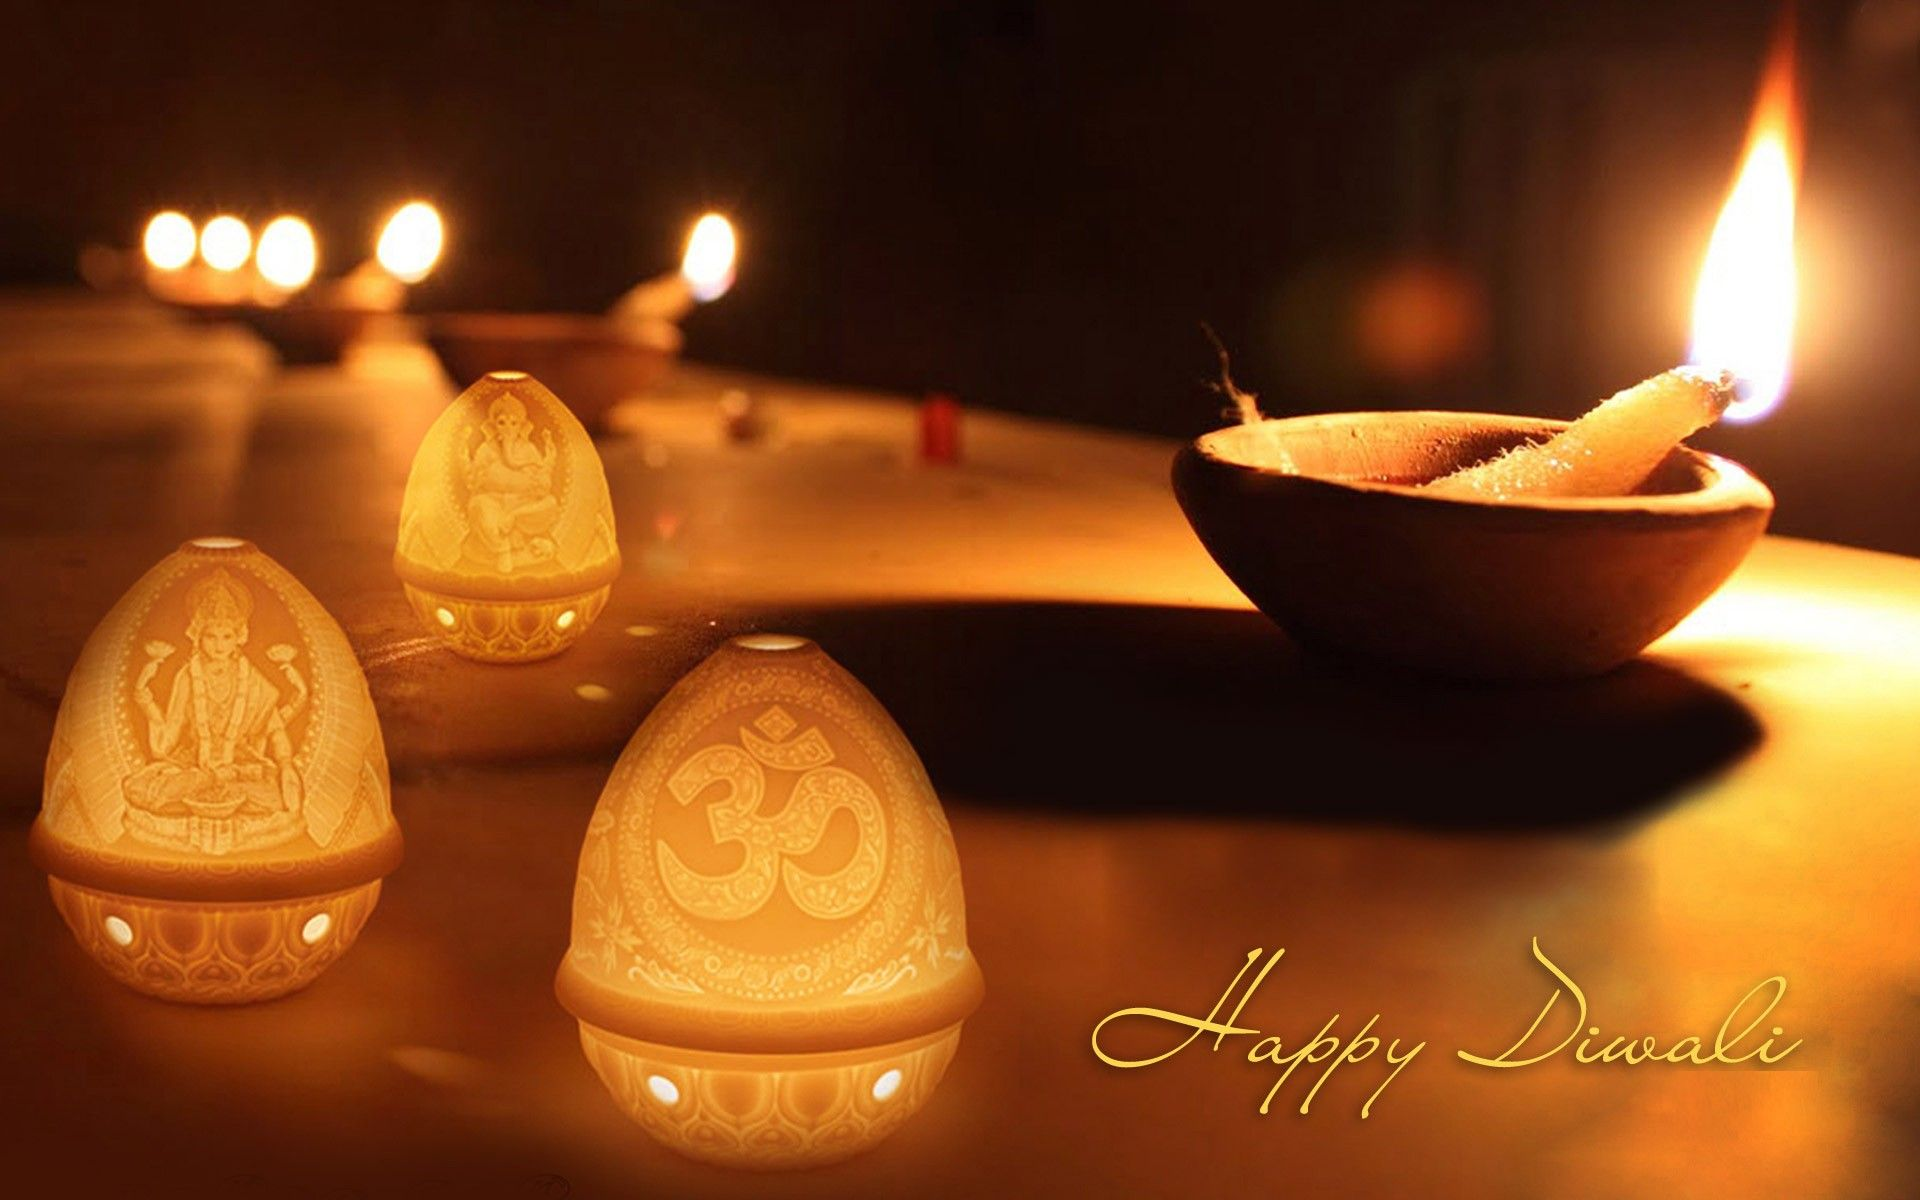 15 Happy Diwali Images Download Free In Hd